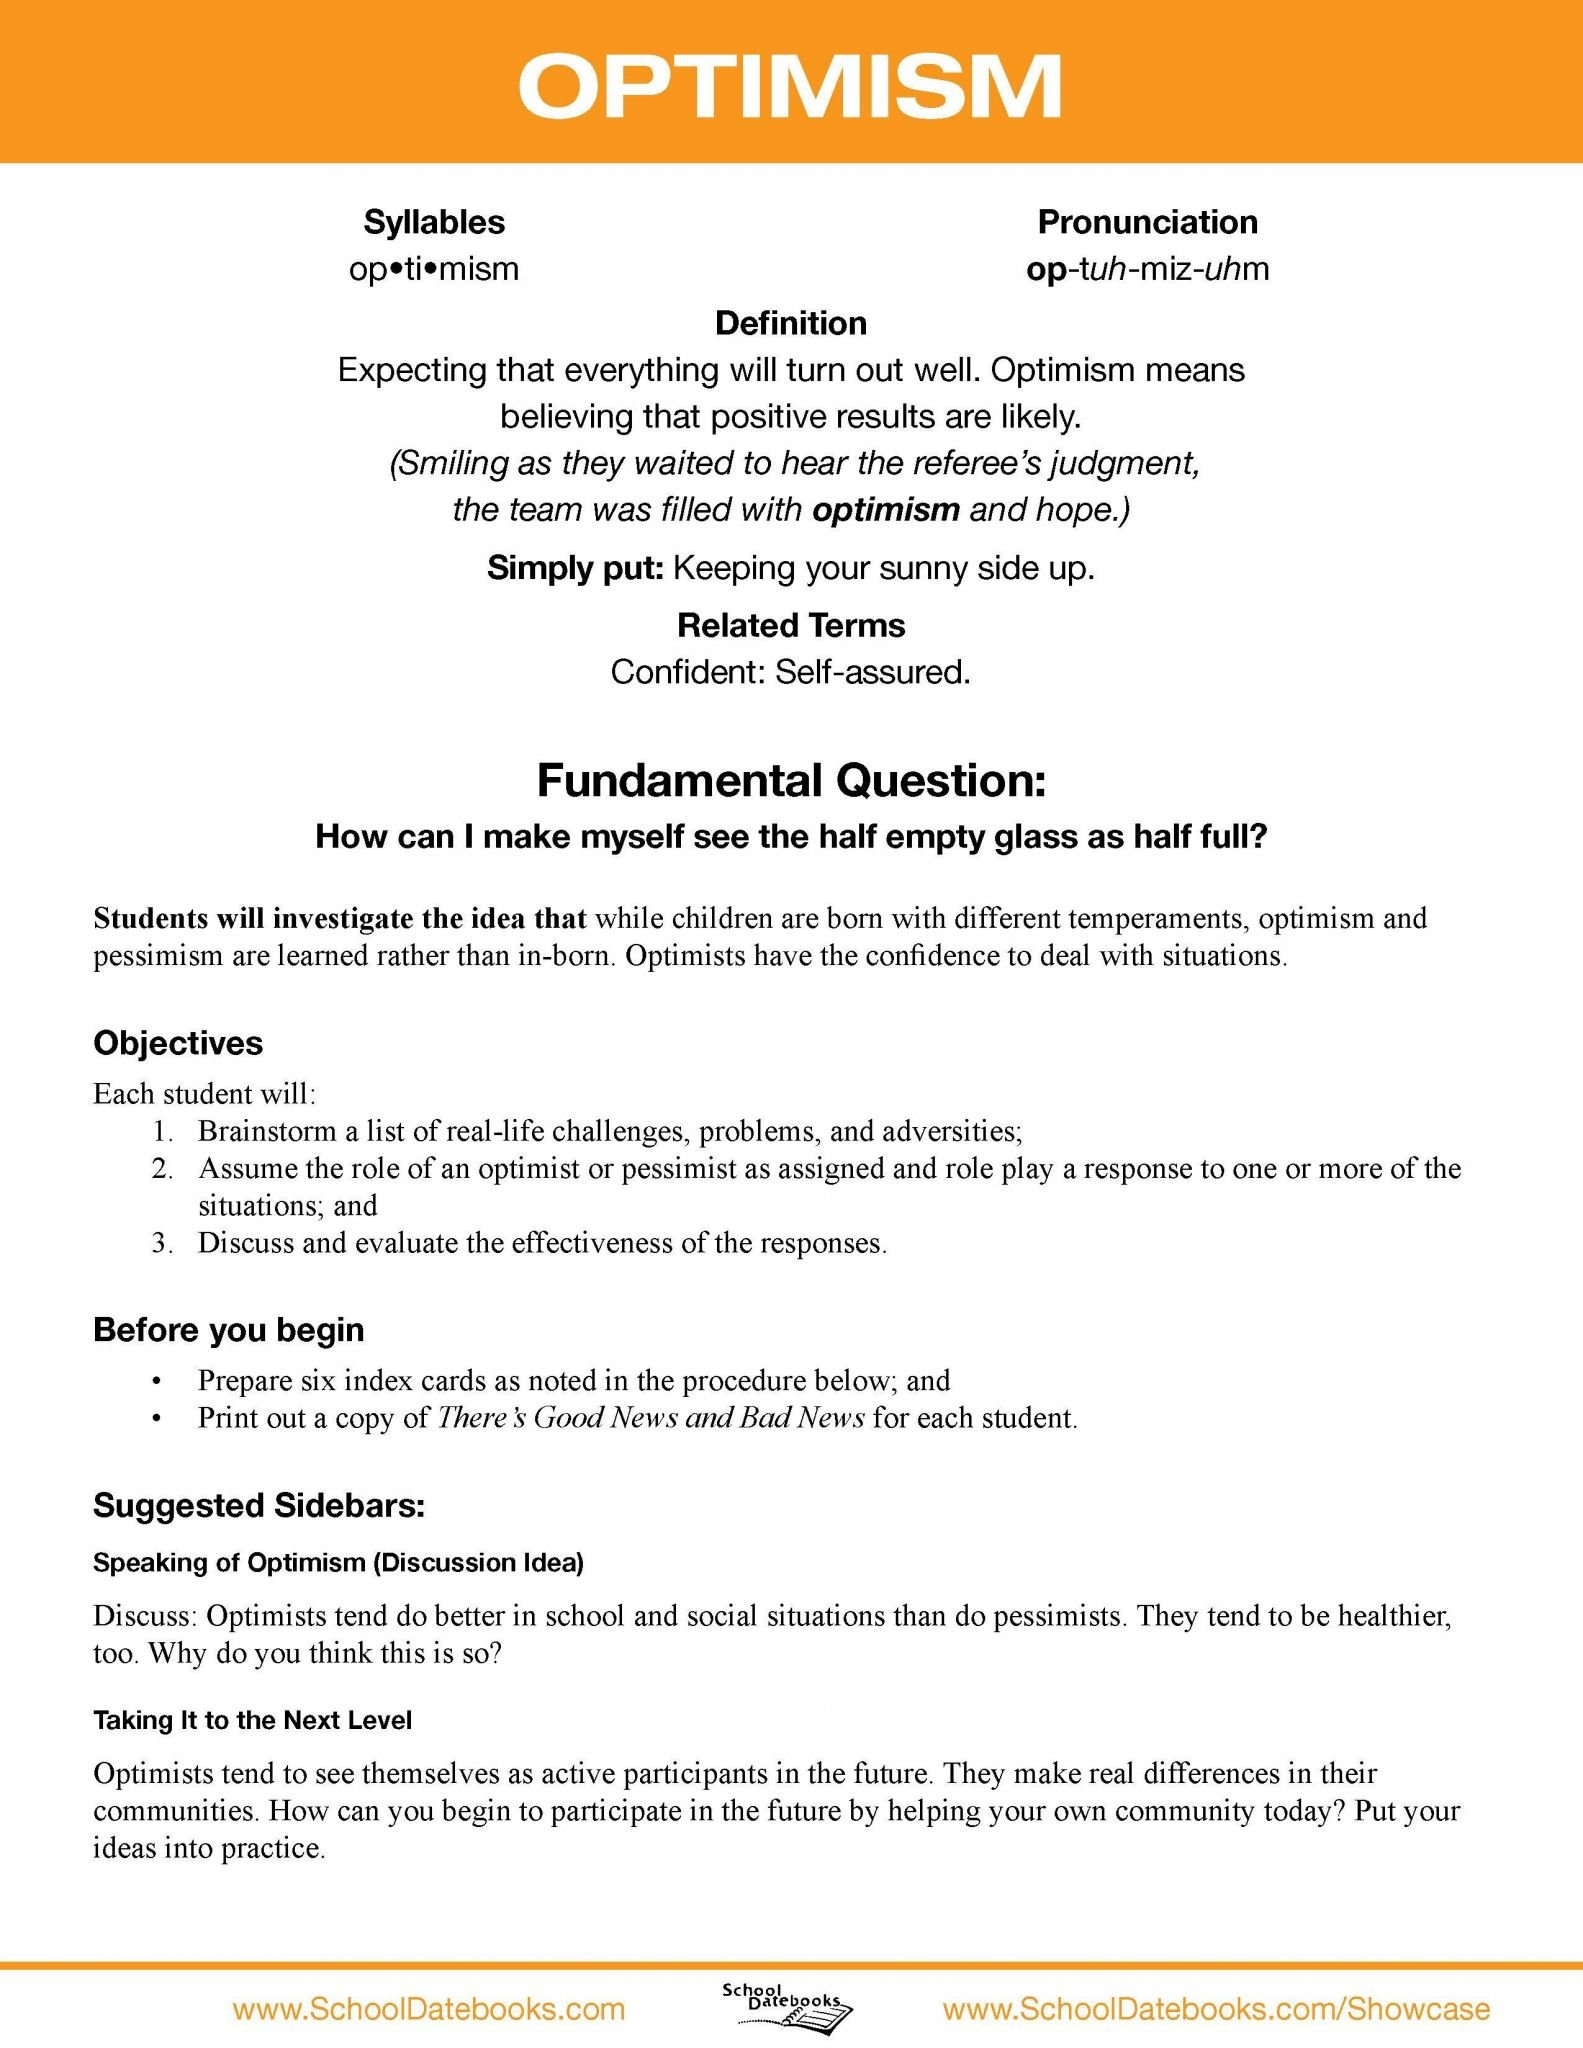 Worksheets On Bullying For Elementary Students  Briefencounters Regarding Free Character Education Worksheets